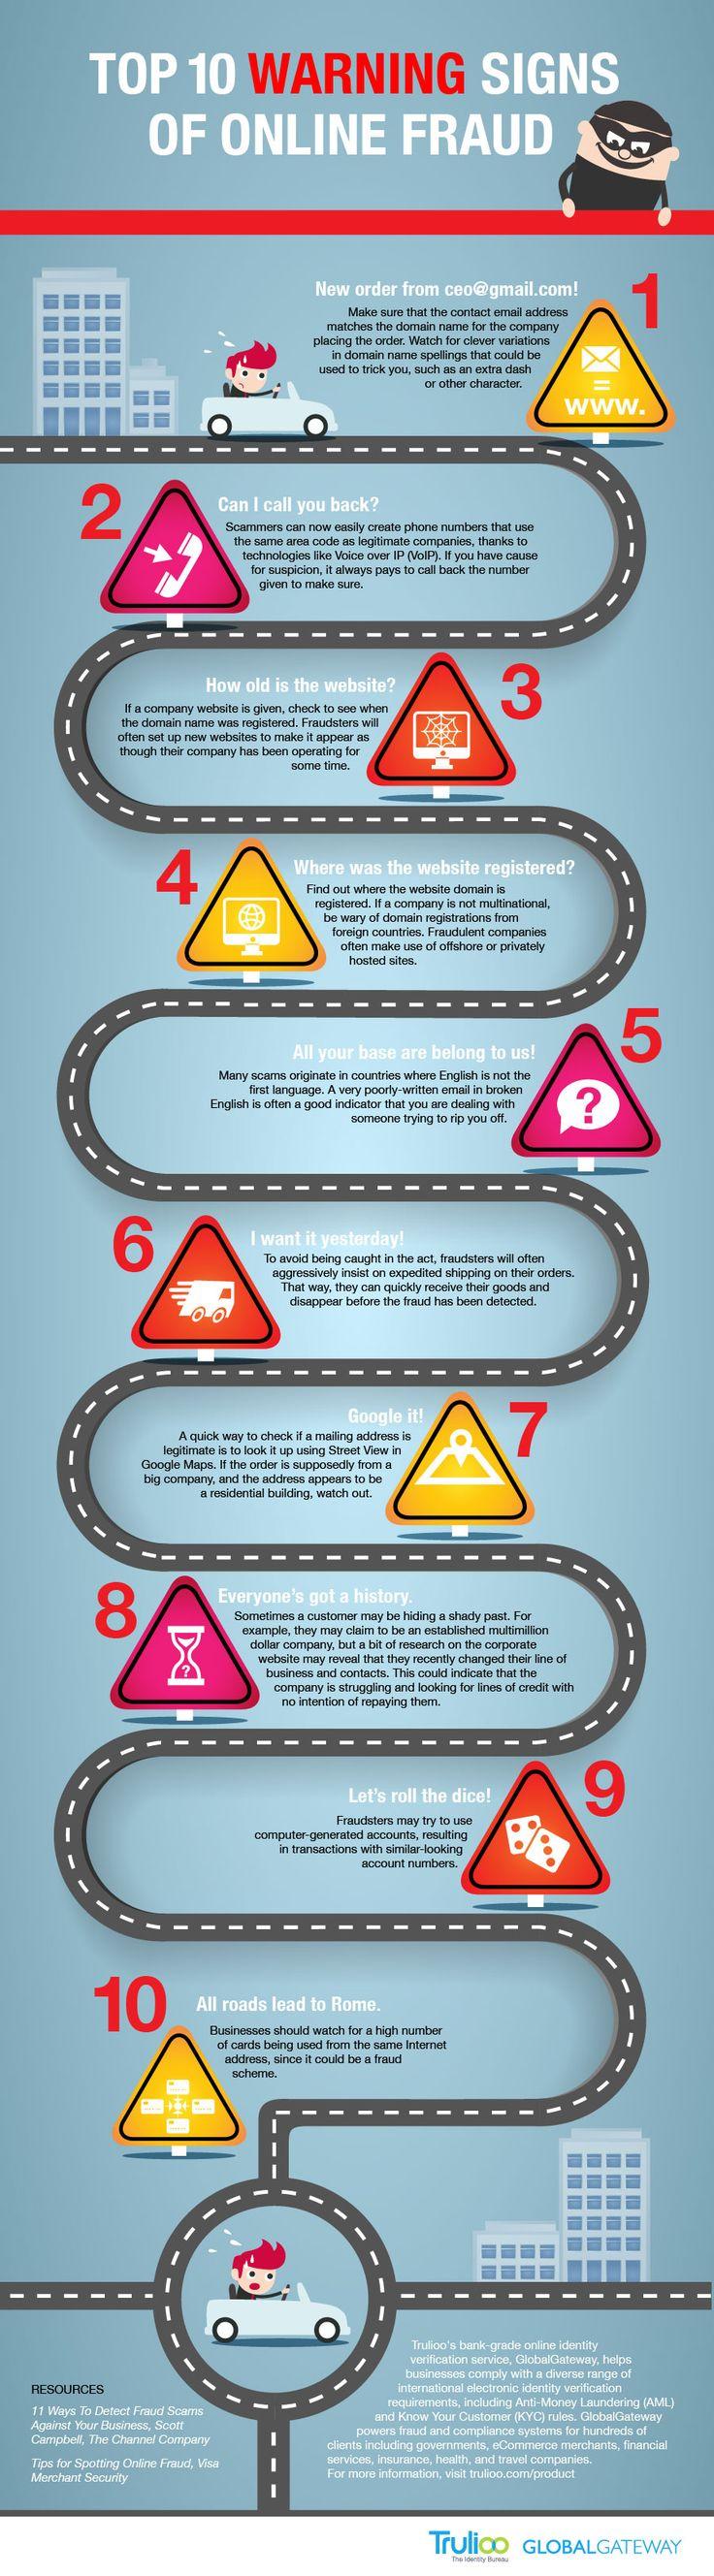 161 best cybersecurity images on pinterest safety computer infographic top 10 warning signs of online fraud fandeluxe Image collections